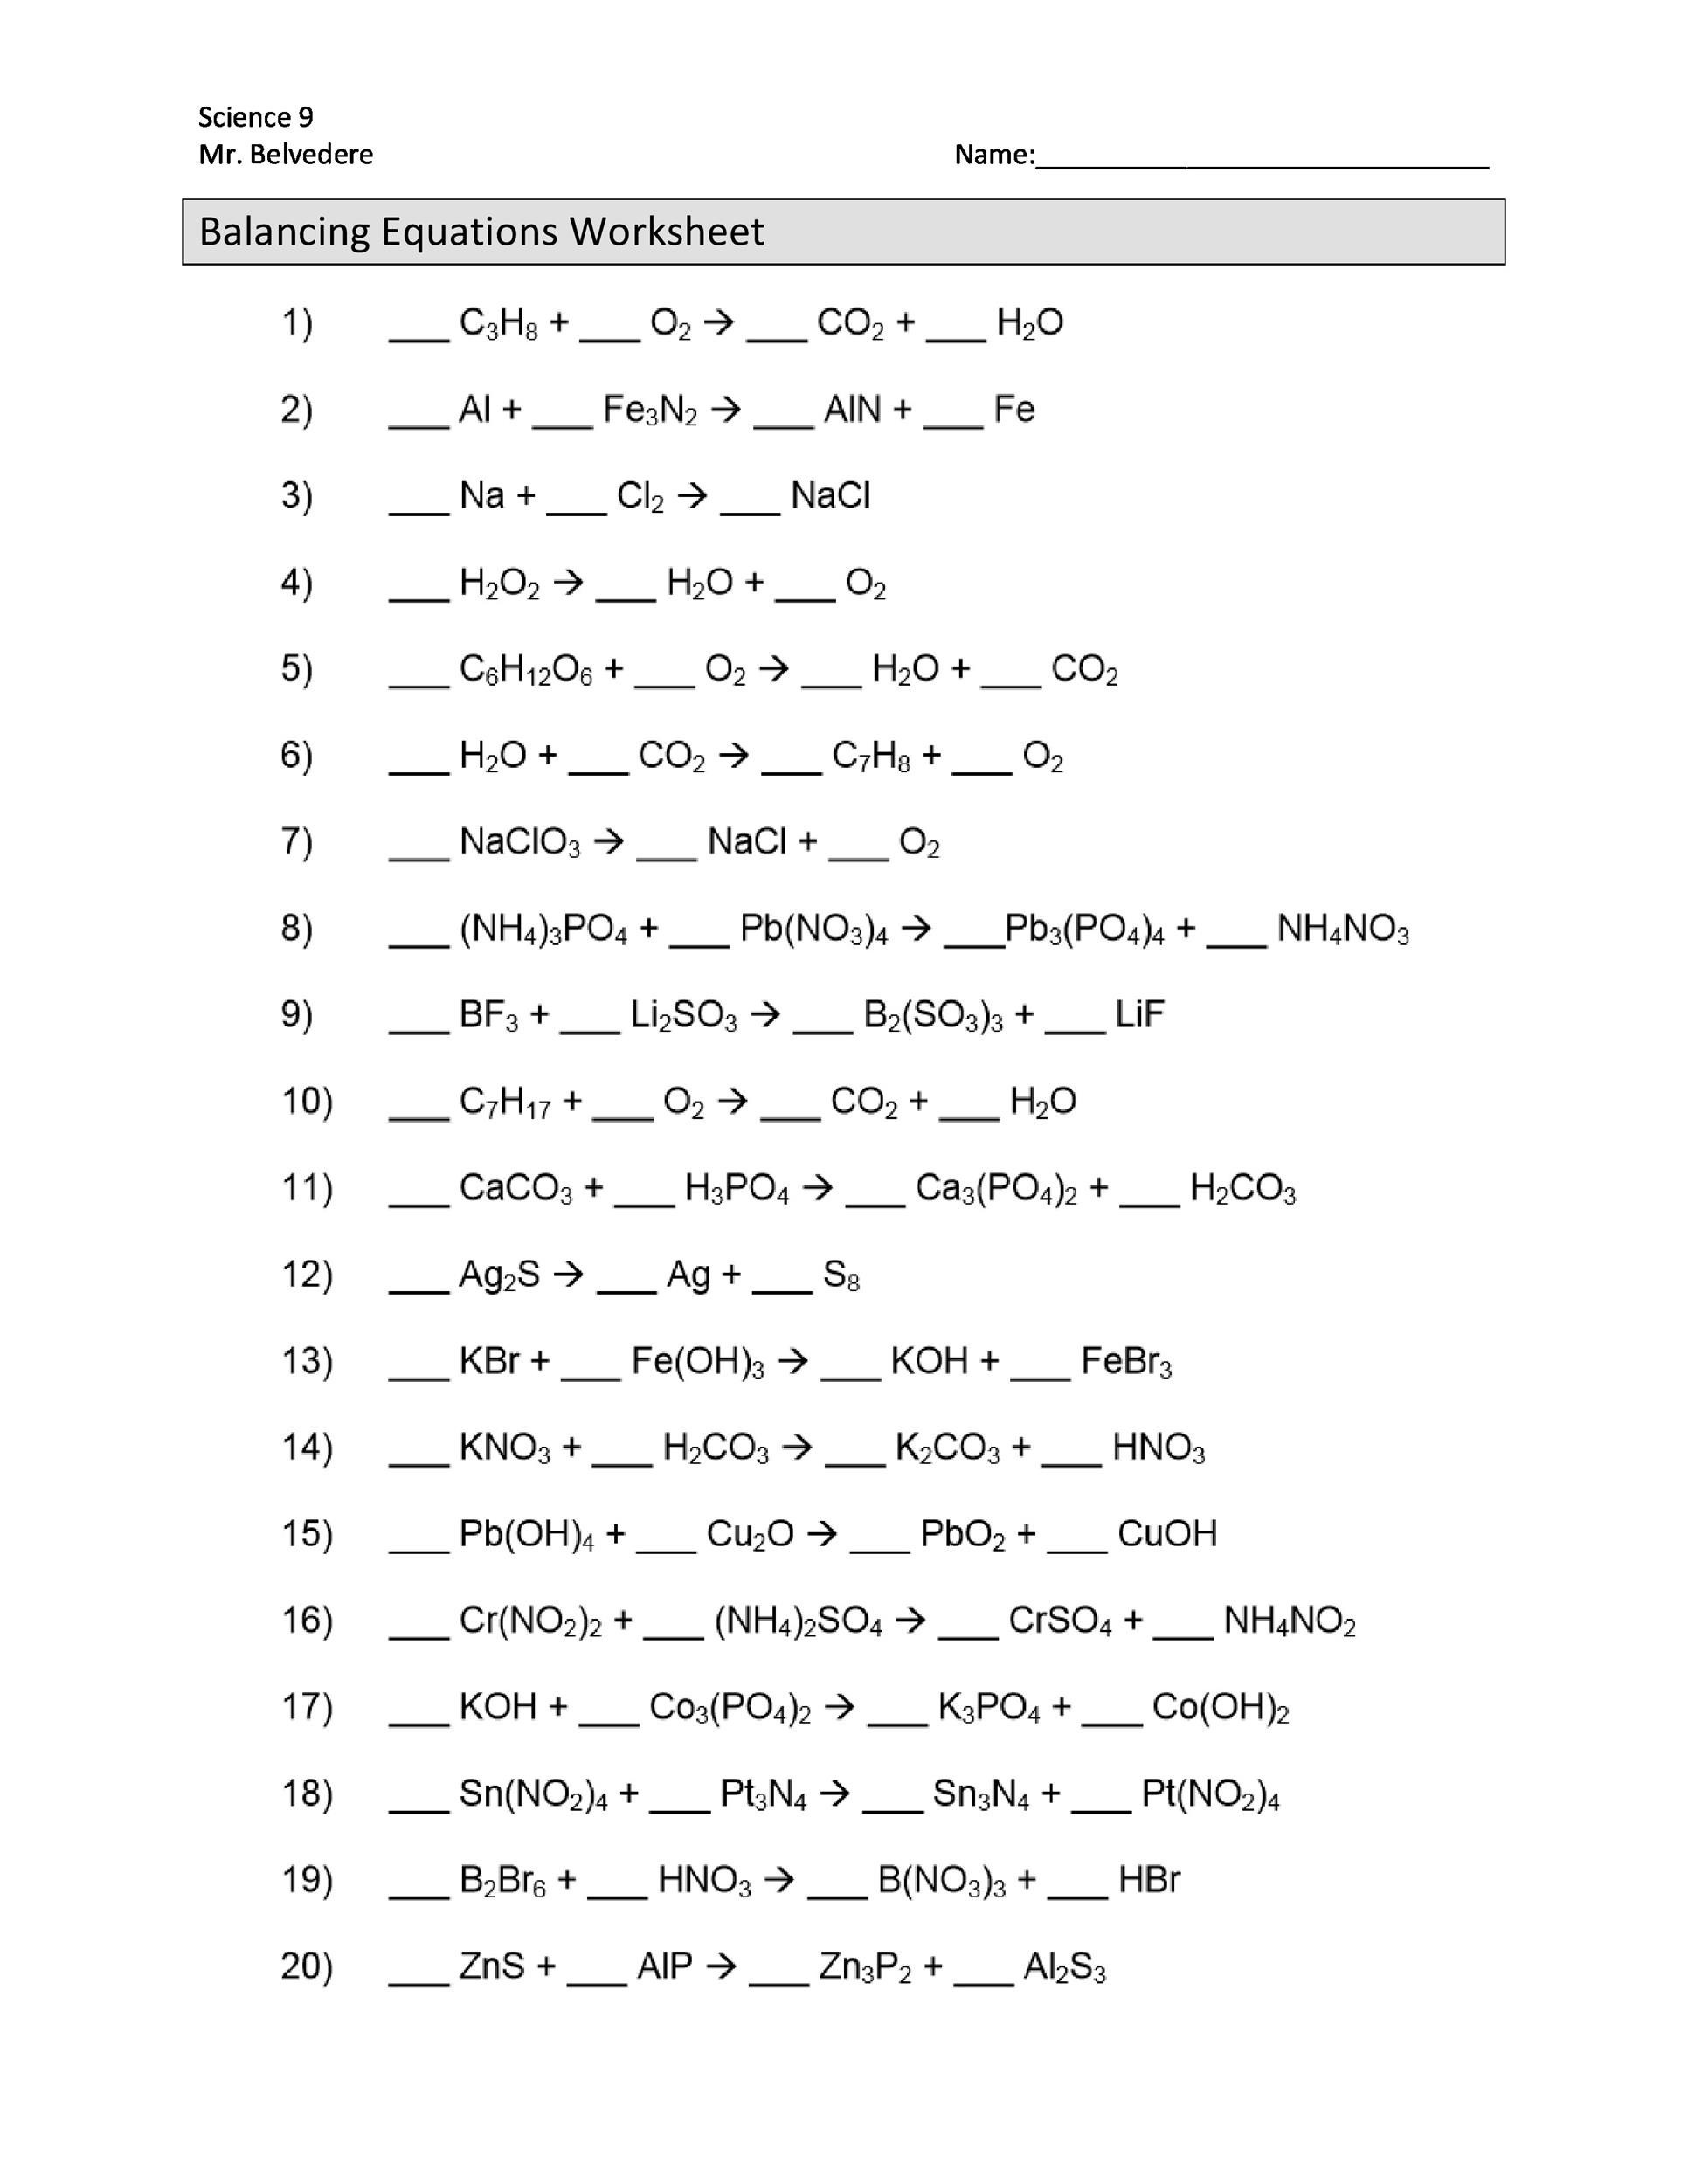 49 Balancing Chemical Equations Worksheets with Answers – Balancing Equations Worksheet Answer Key